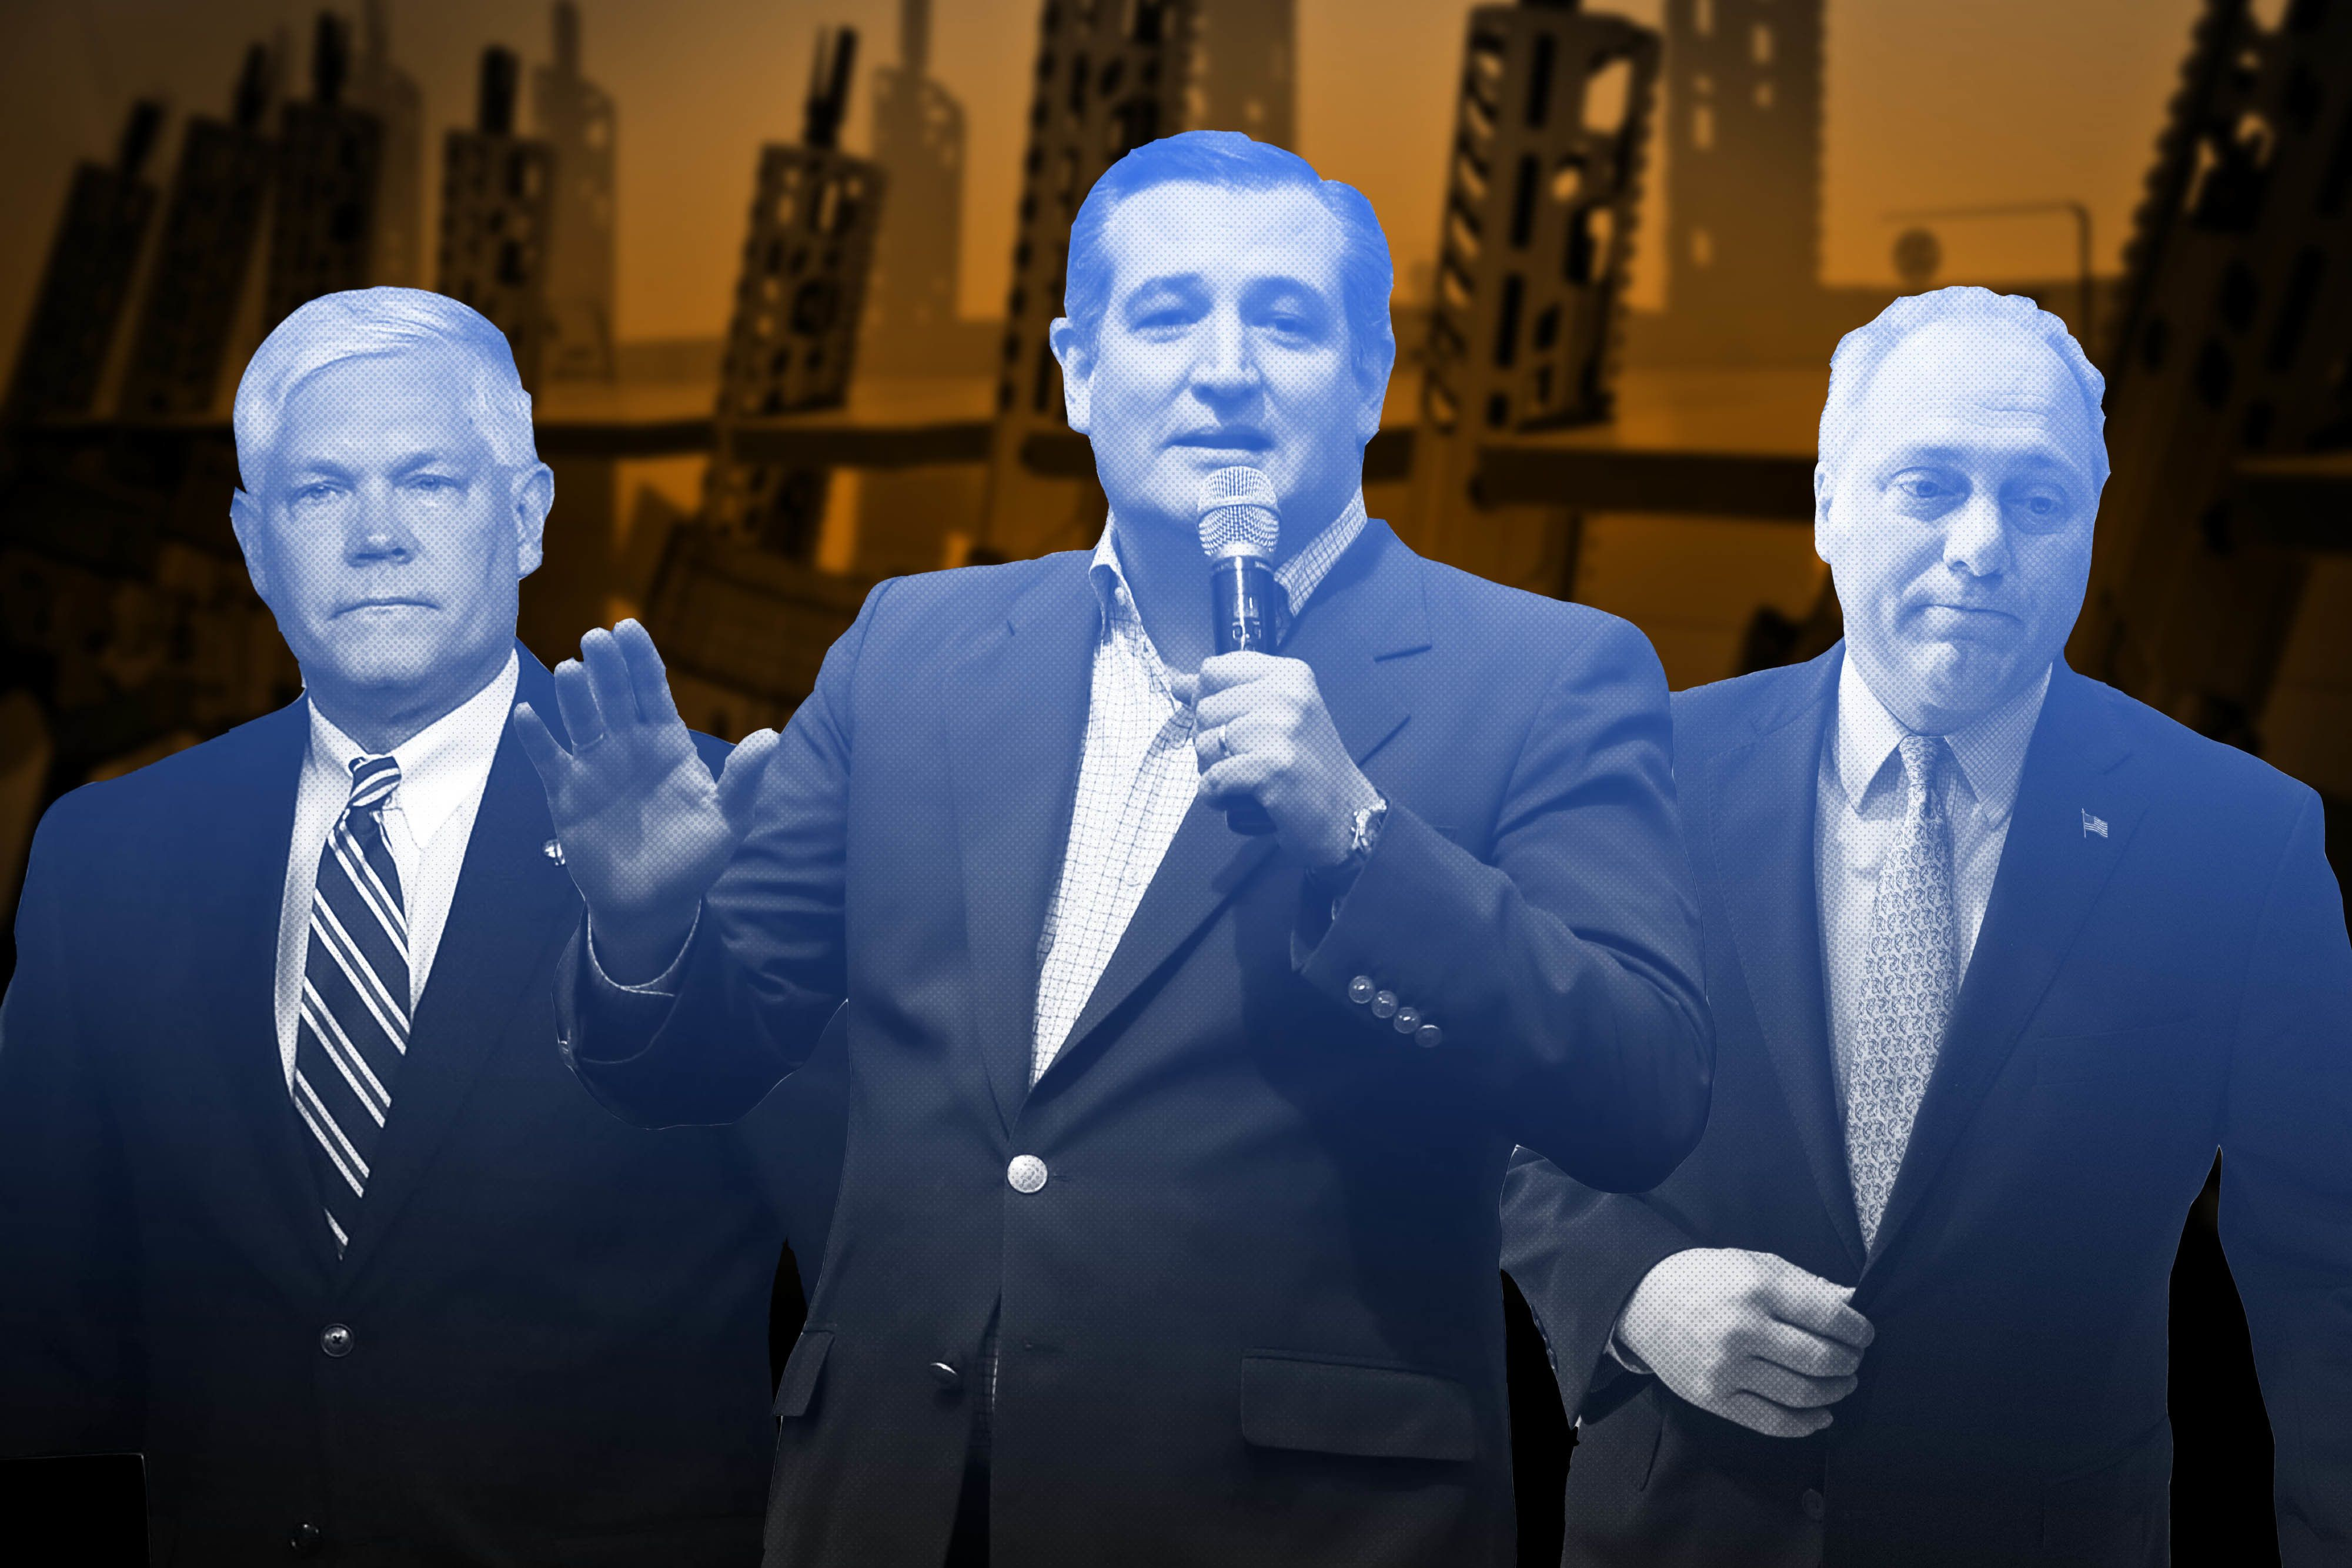 Doctors' groups continued to fund pro-NRA politicians like Pete Sessions, Ted Cruz and Steve Scalise, even as the organizatio